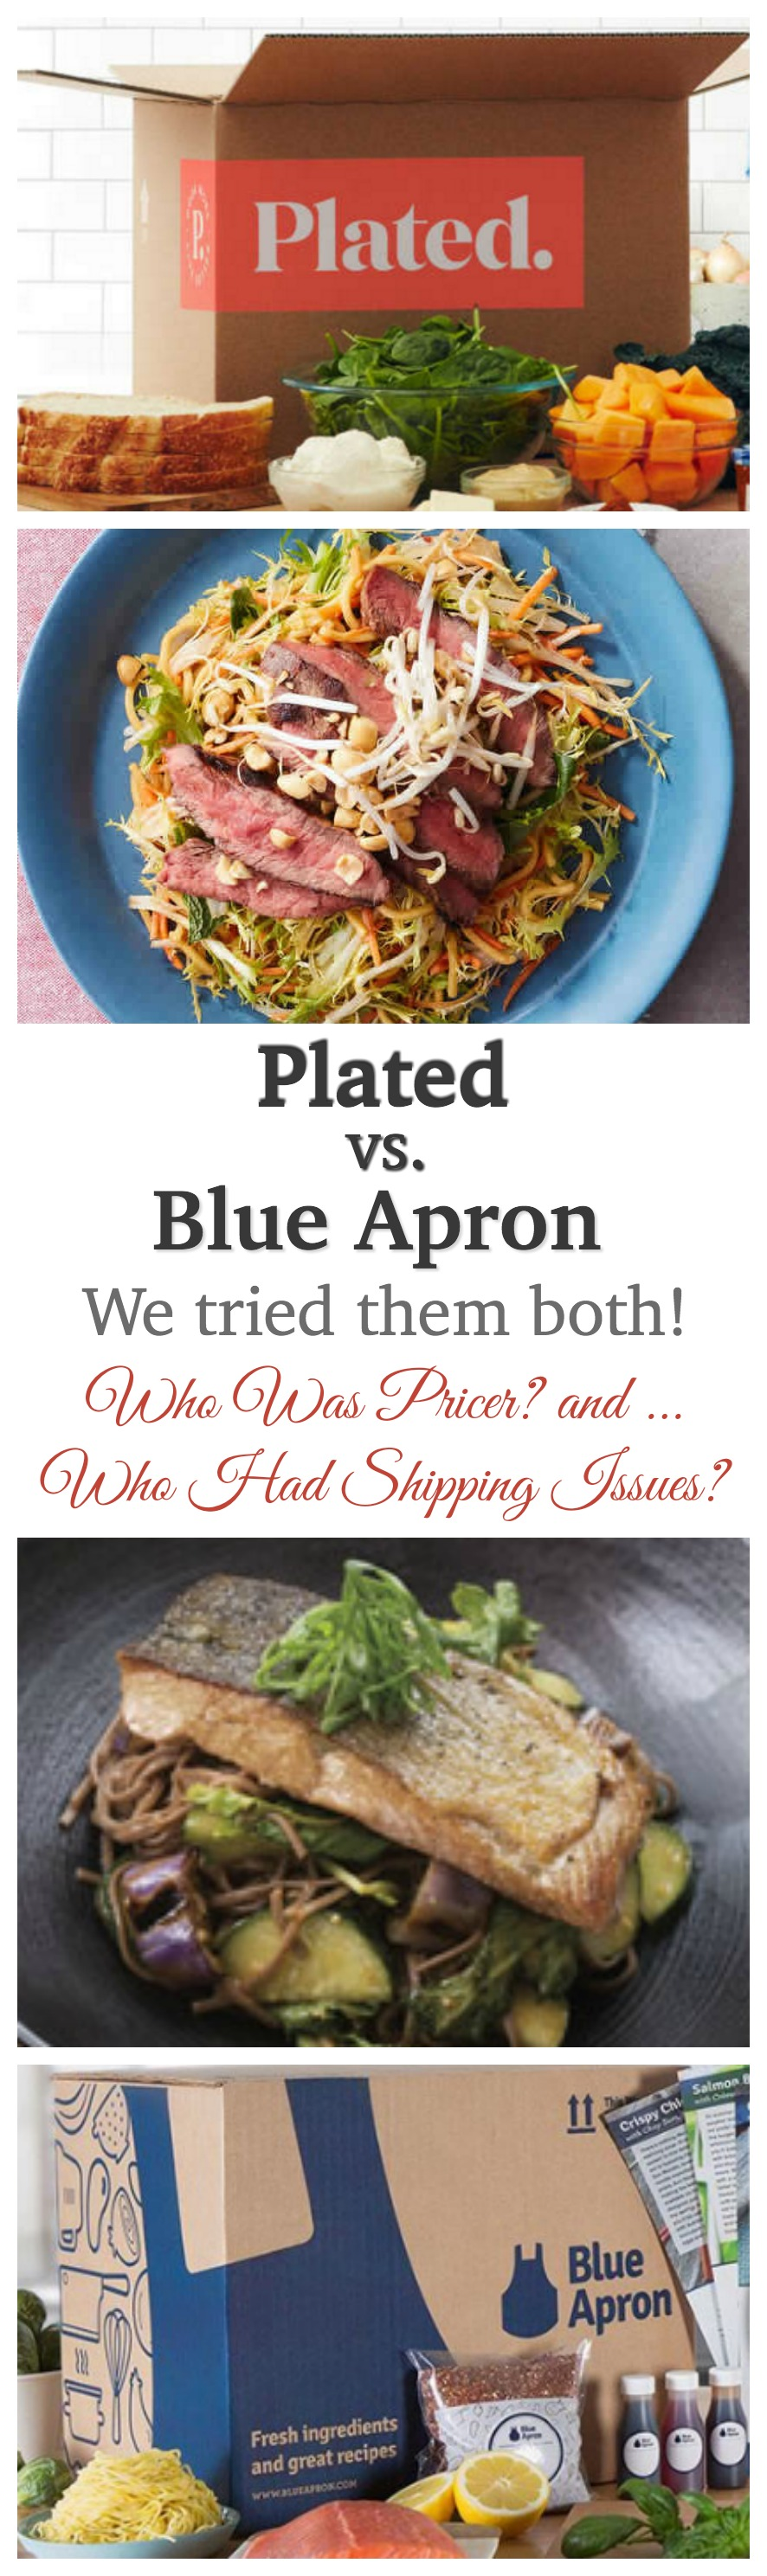 Plated vs. Blue Apron - We tested them both. Find out who was pricier and who had consistent shipping issues!